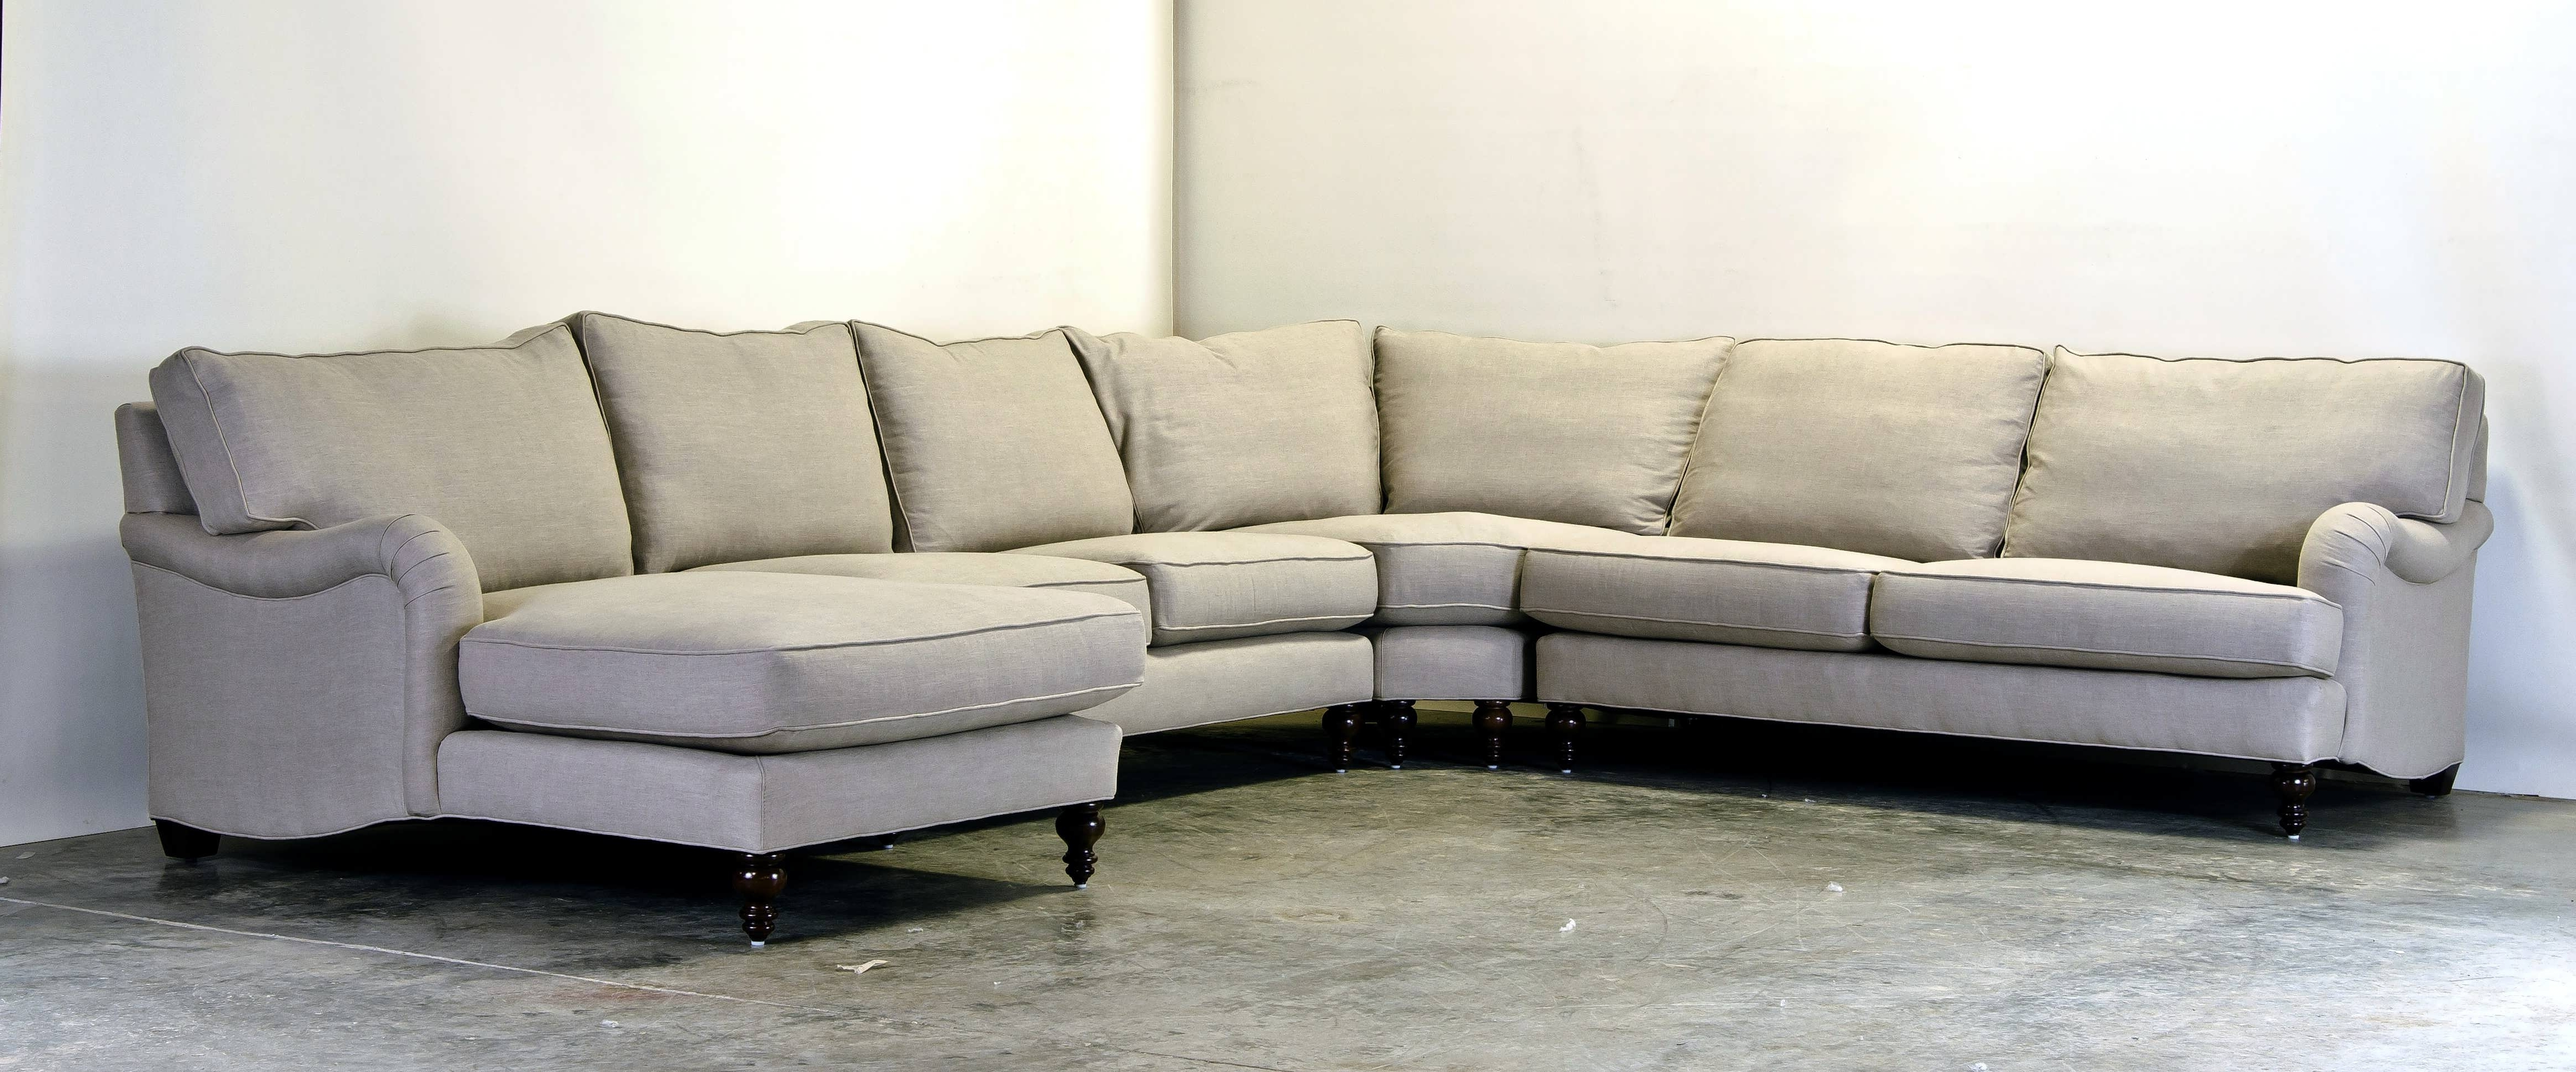 Sofa : Mini Sectional Couch Sofa Couch Sectional Furniture Small Inside Well Known Small Couches With Chaise (View 10 of 15)